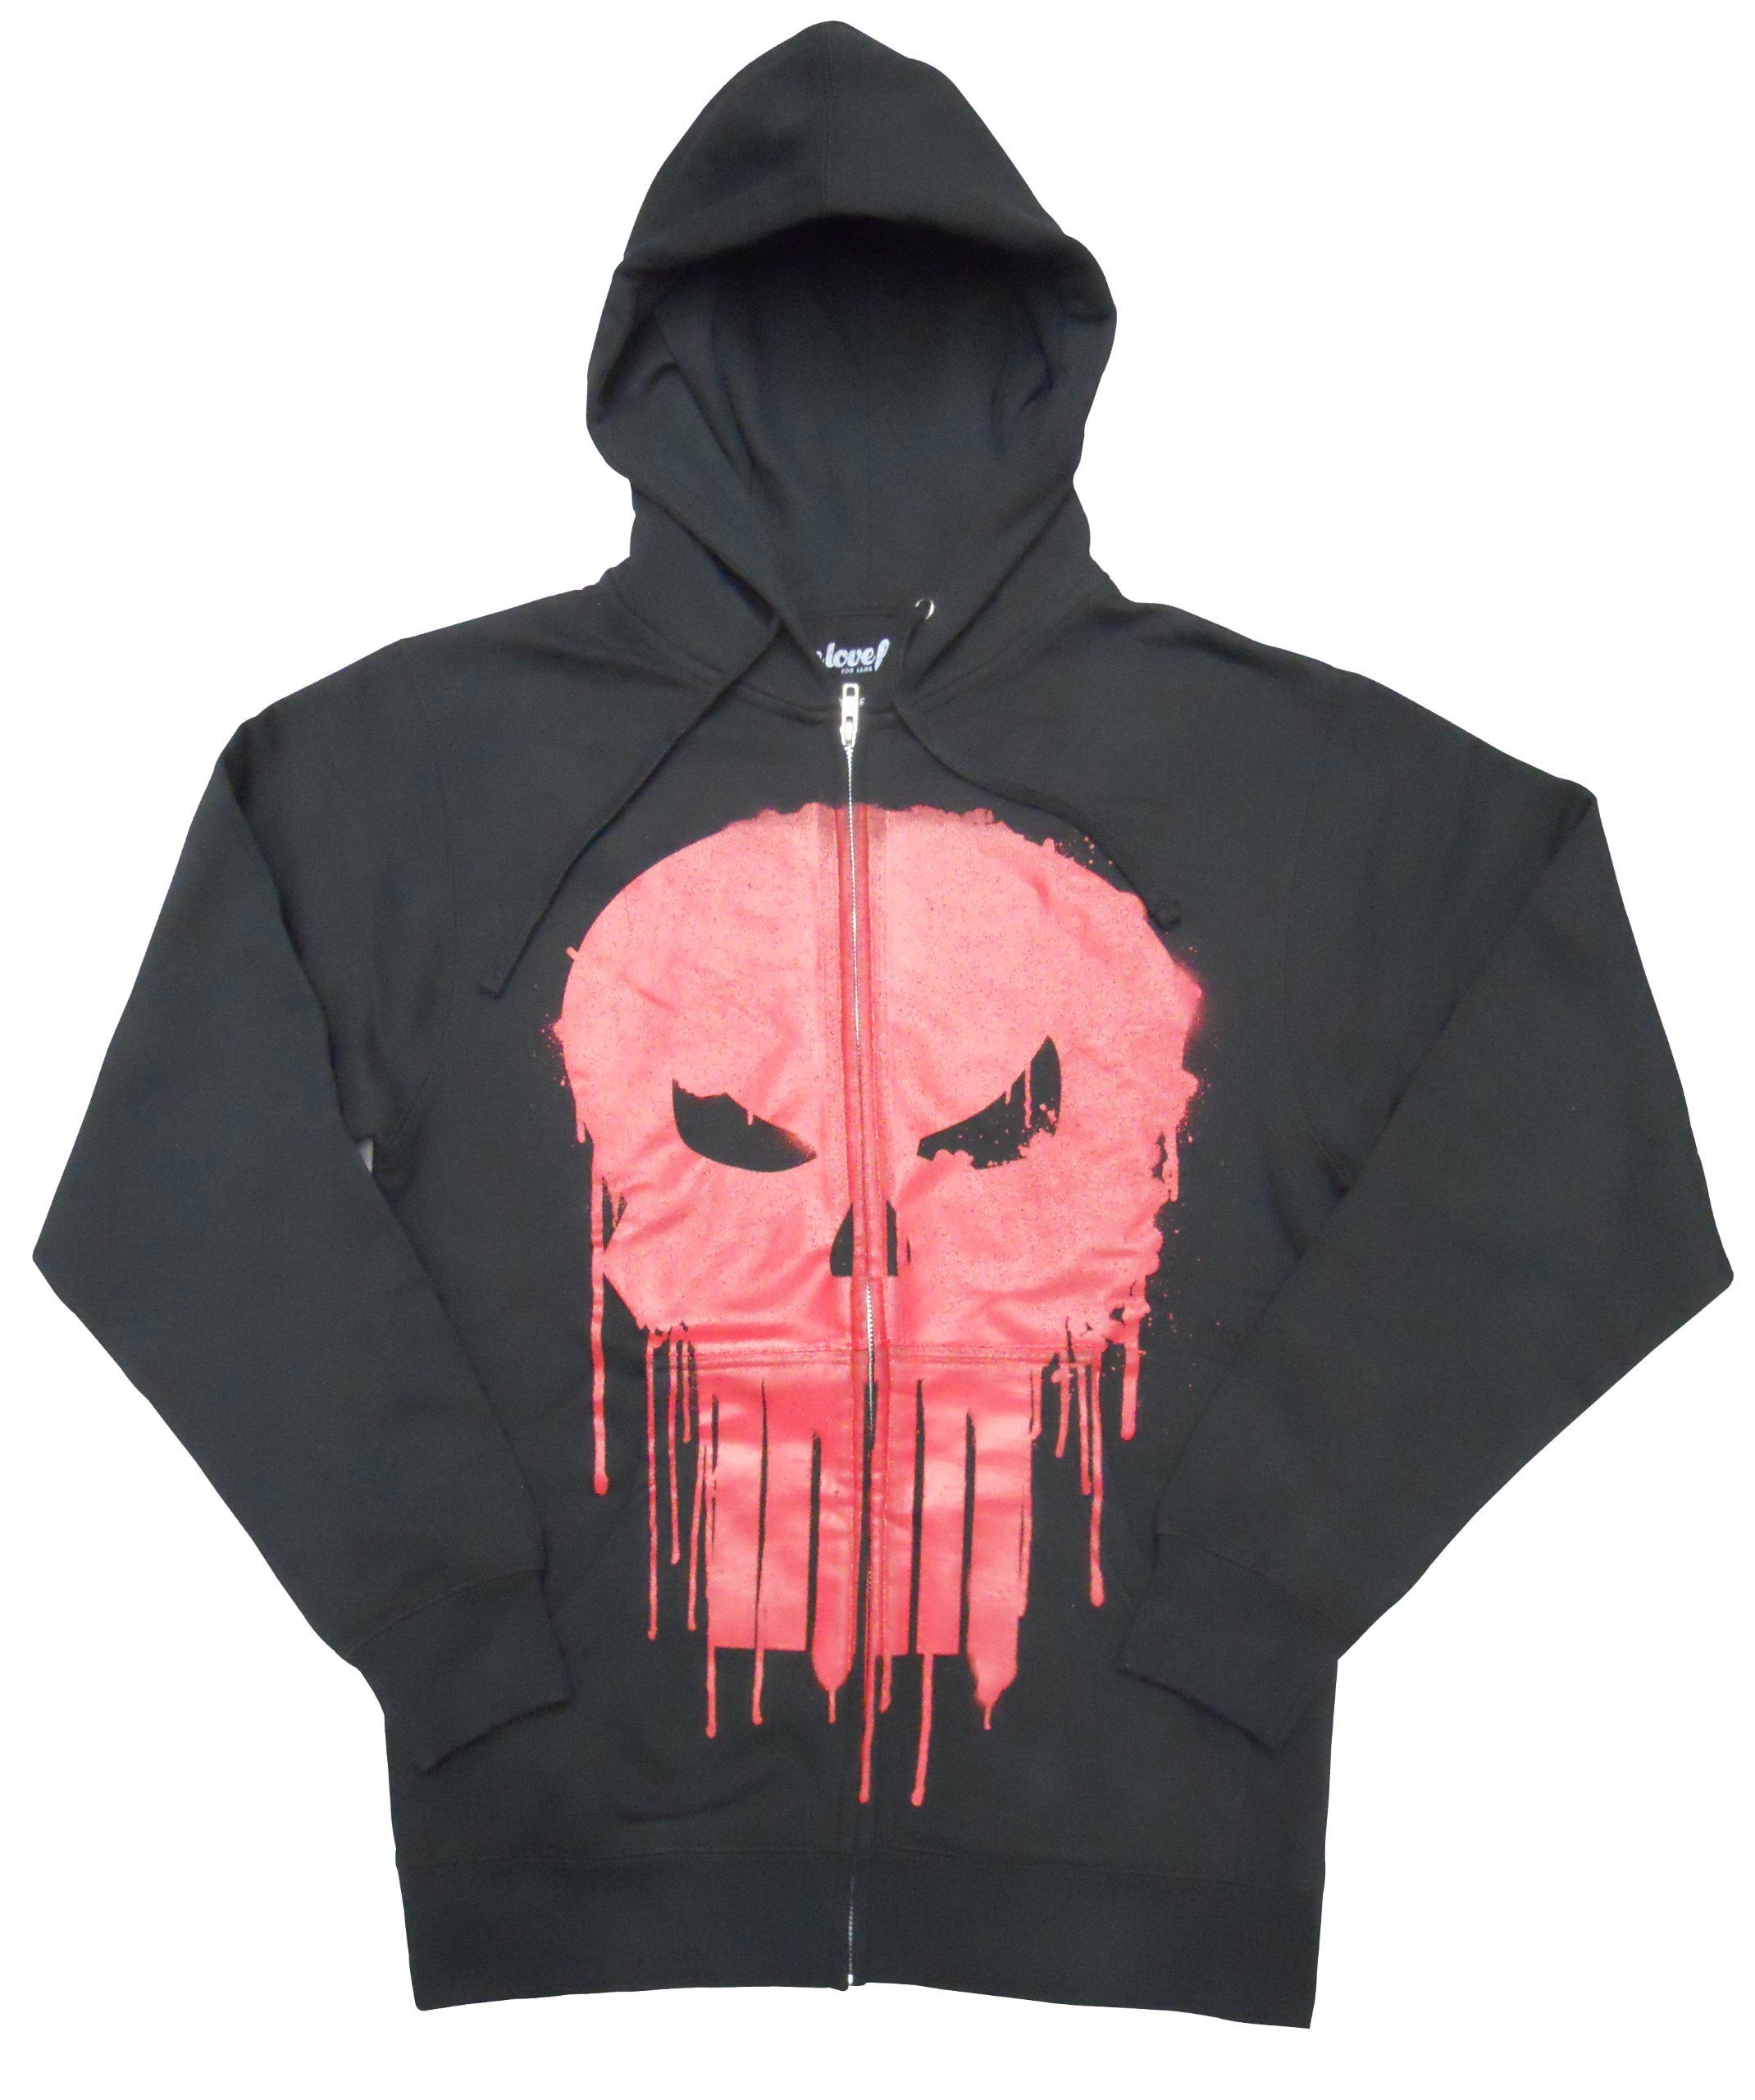 Marvel Punisher Dripped Red Skull Mens Black Zip Up Hoodie Sweatshirt